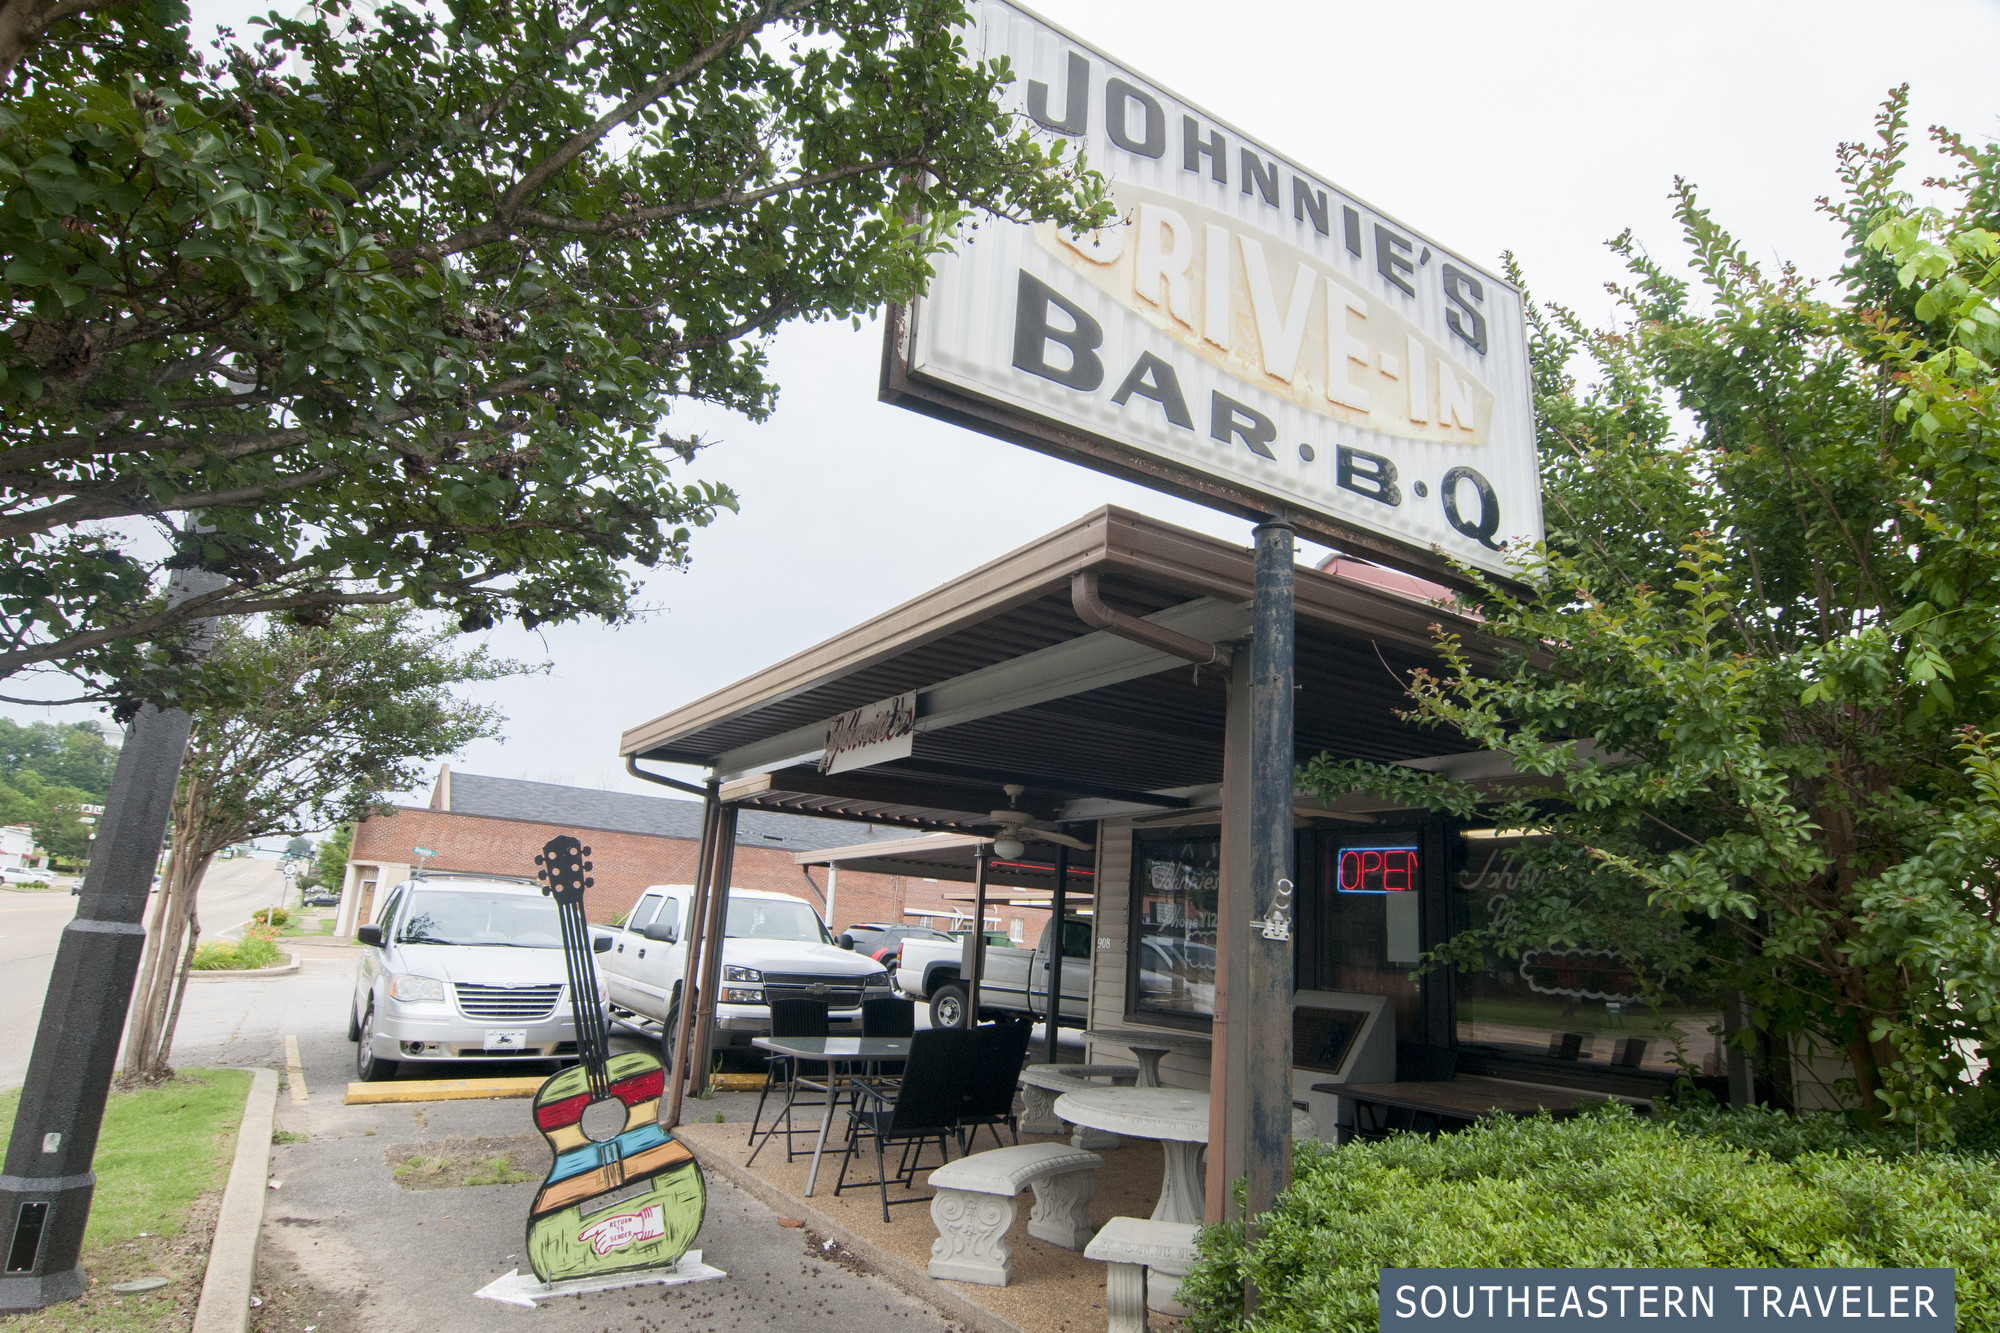 Large sign reading Johnnie's Drive-In Bar-B-Q, a place where Elvis Presley would get food in Tupelo, Mississippi